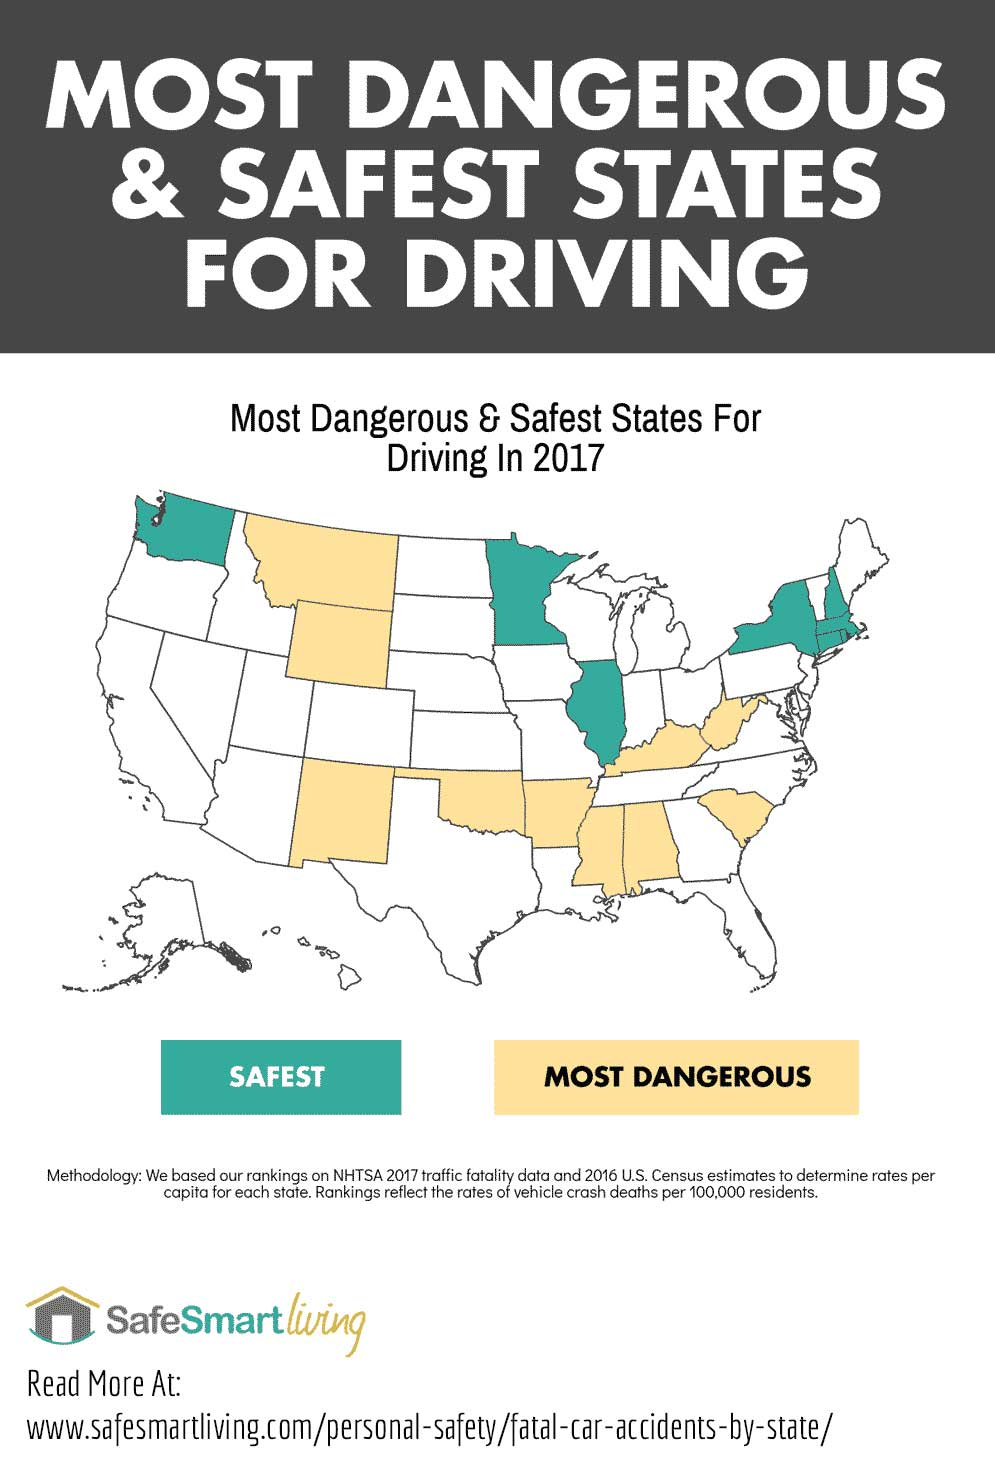 Map of safest and most dangerous states in the U.S. Caption: What Are The Most Dangerous And Safest States For Driving?